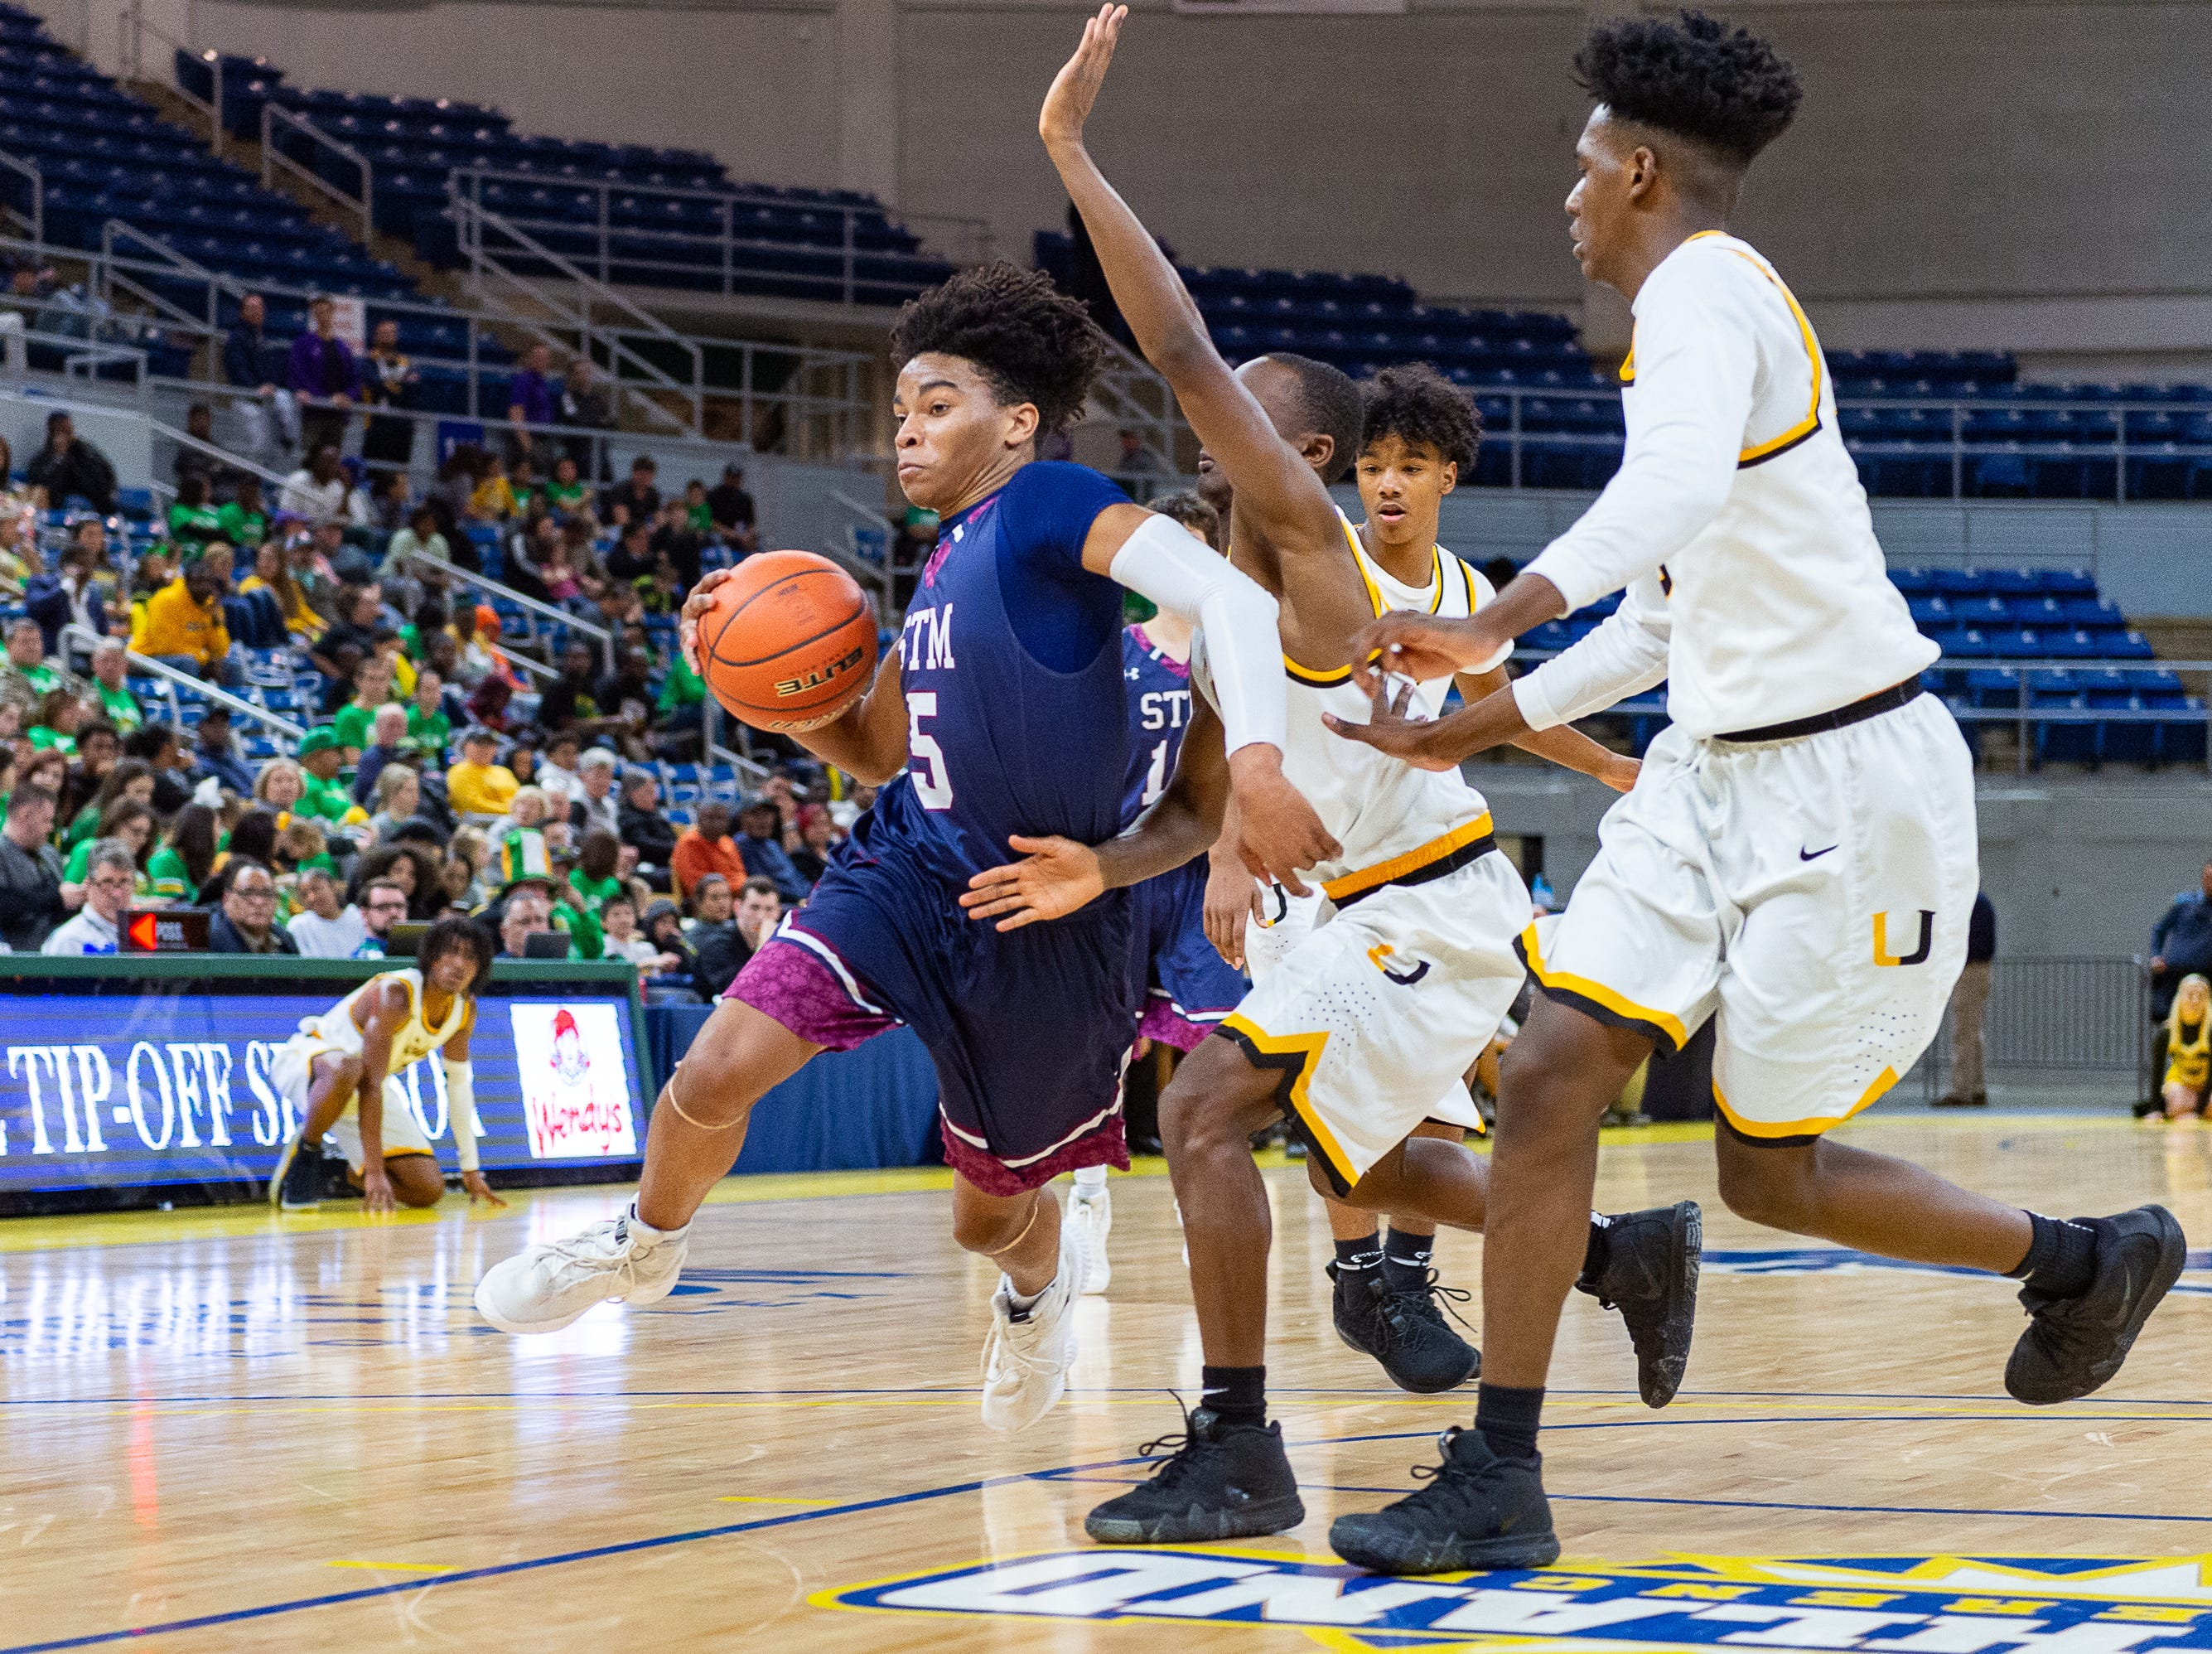 Jaden Shelvin drfives to the basket as STM takes down University High in the semi final round of the LHSAA Basketball State Championships. Wednesday, March 6, 2019.